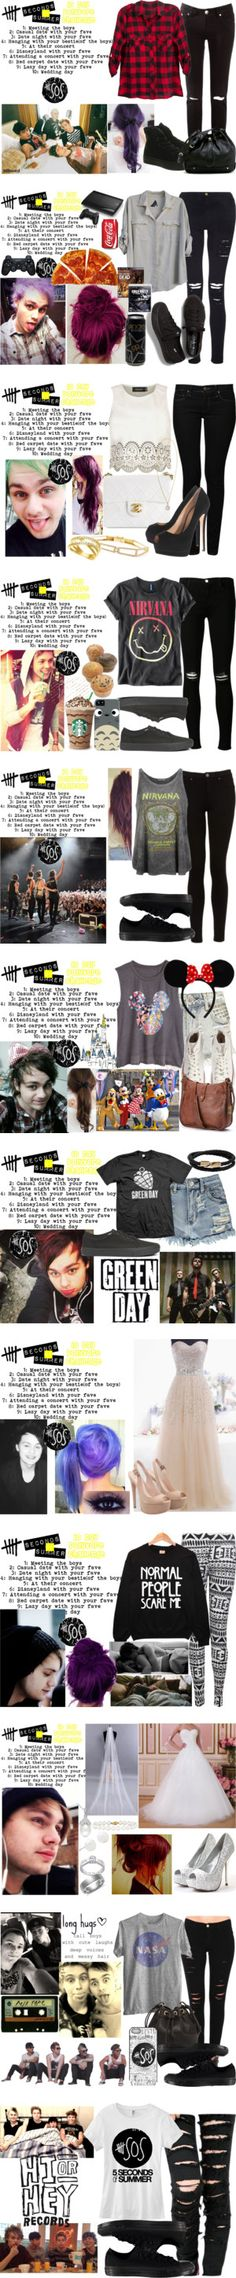 """""""5 Seconds of summer"""" by nanahehe ❤ liked on Polyvore"""